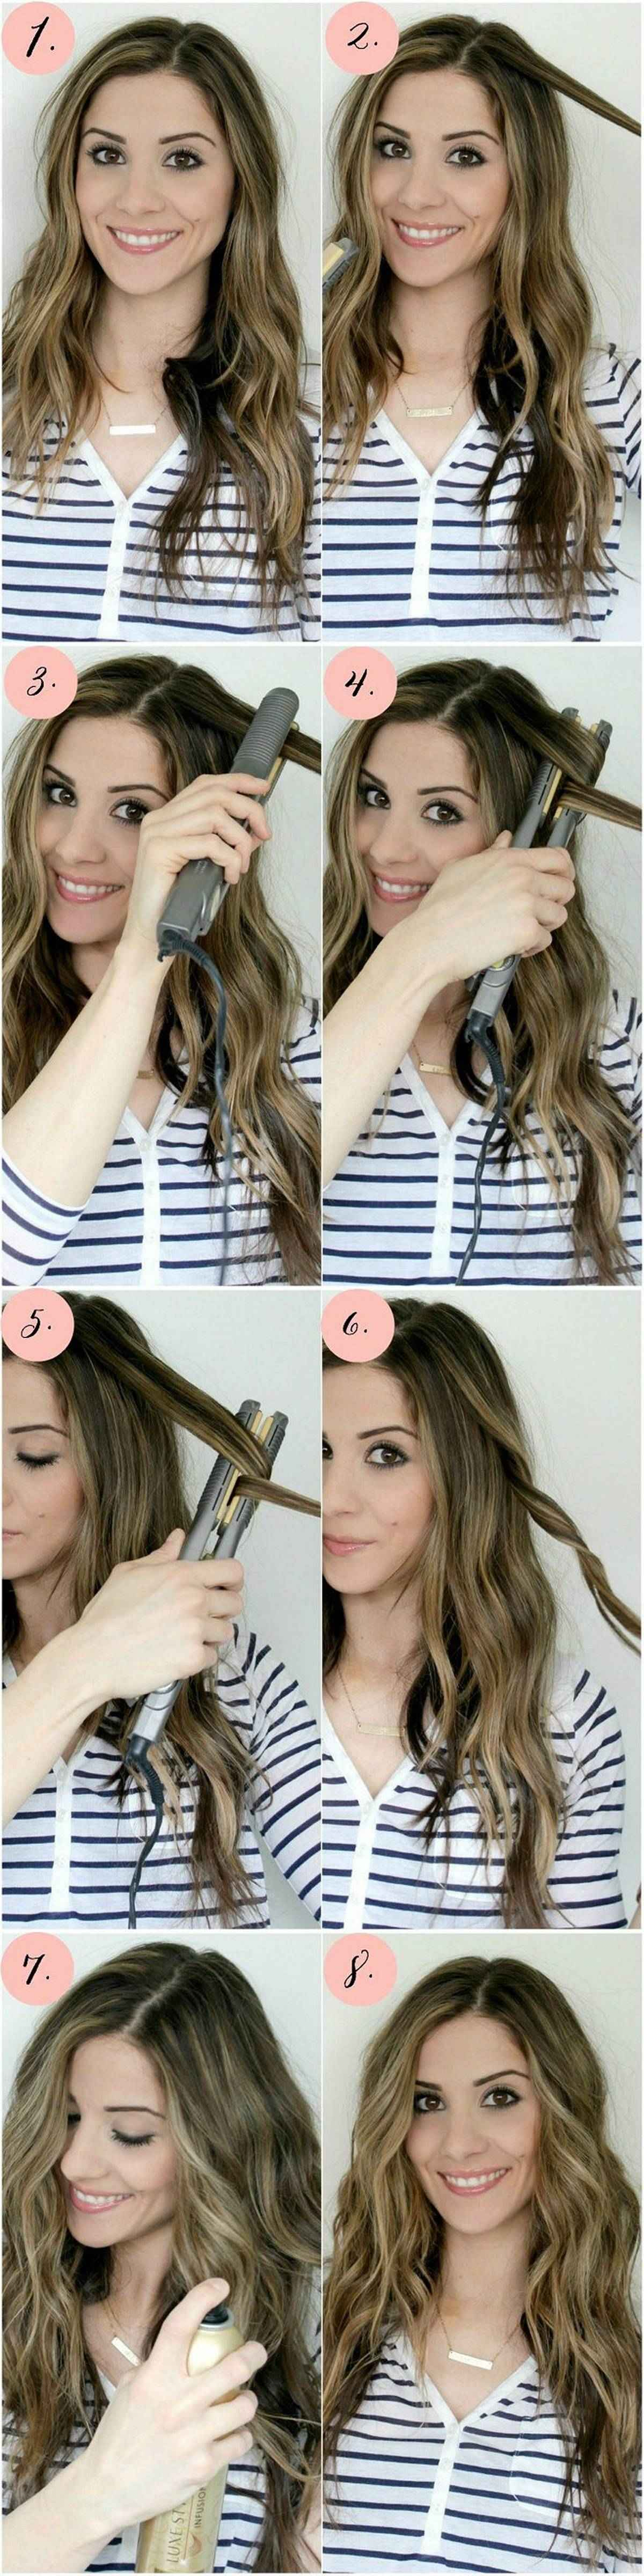 Hairstyles diy and tutorial for all hair lengths 019 | fashion